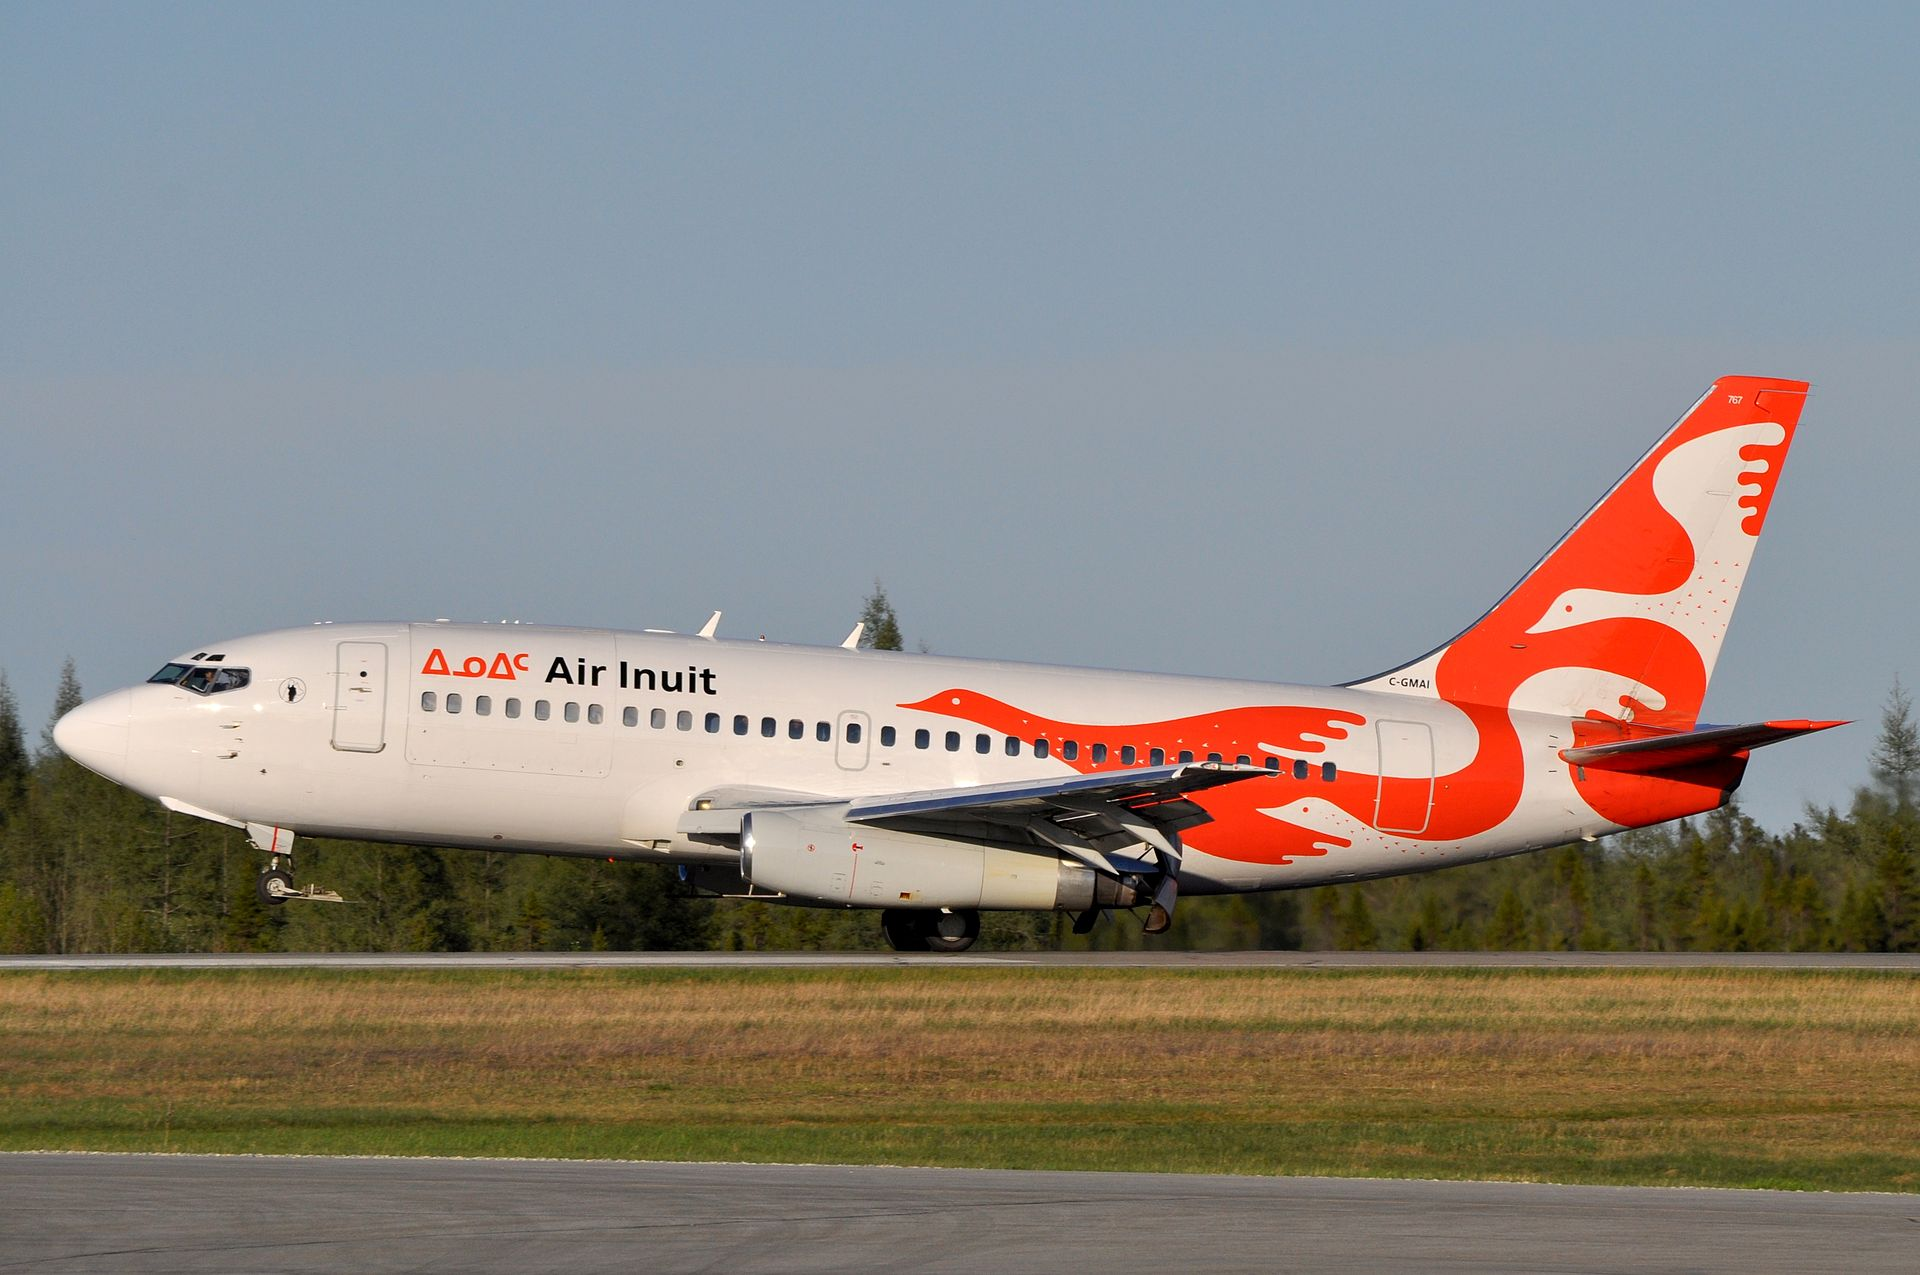 Air Inuit — North America's Airline With Worst Flight Cancellation Rate